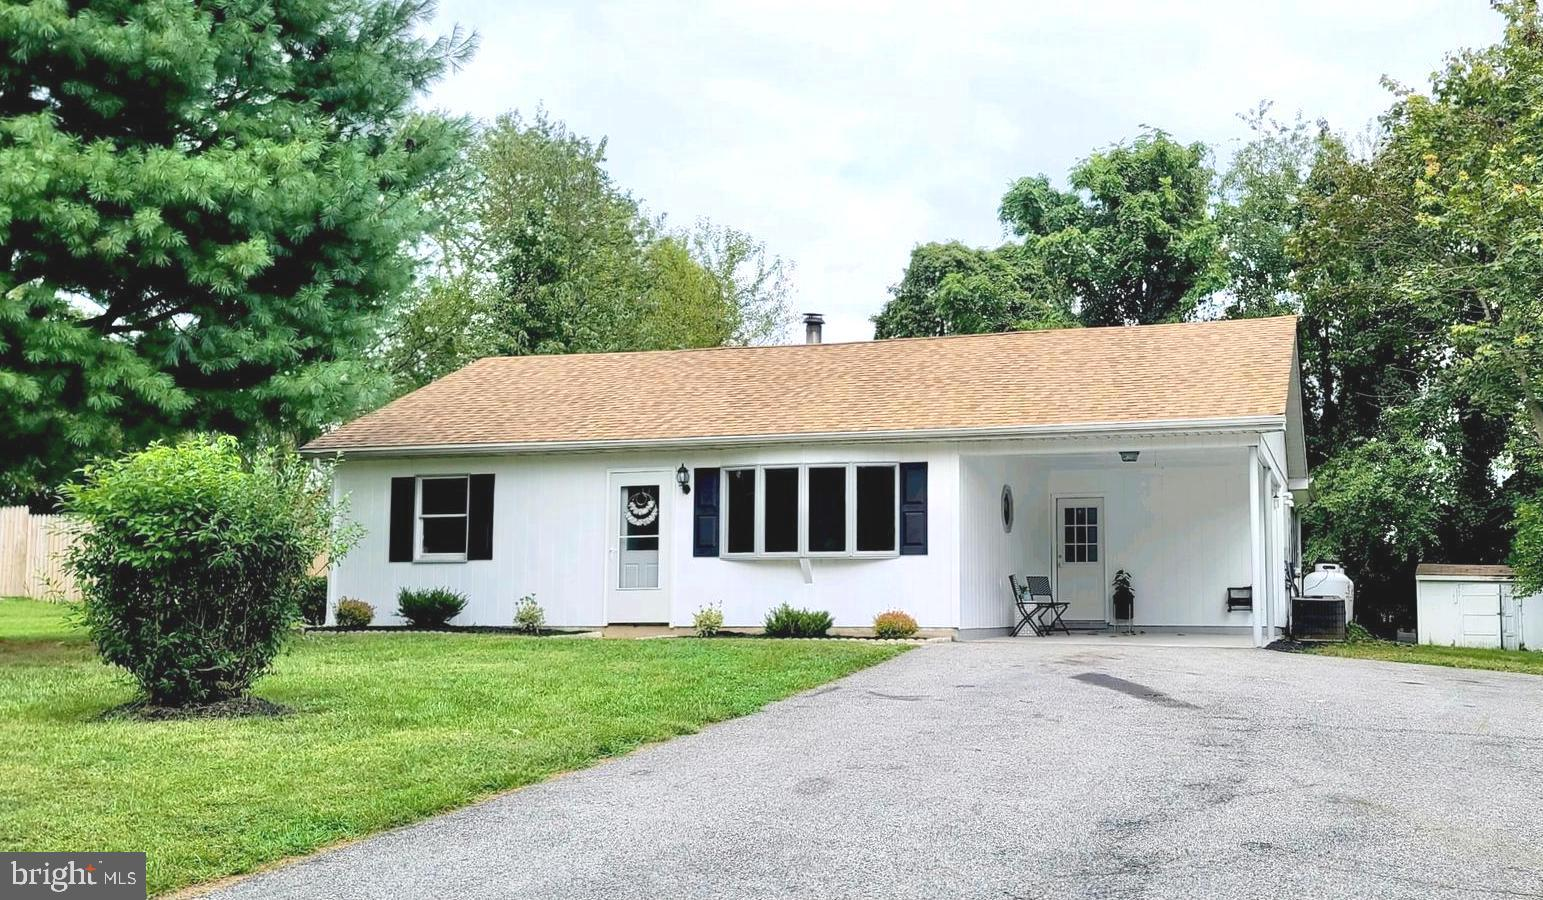 FOLLOW MY HEELS to this adorable rancher in Elk Neck. This home is move in ready with neutral paint